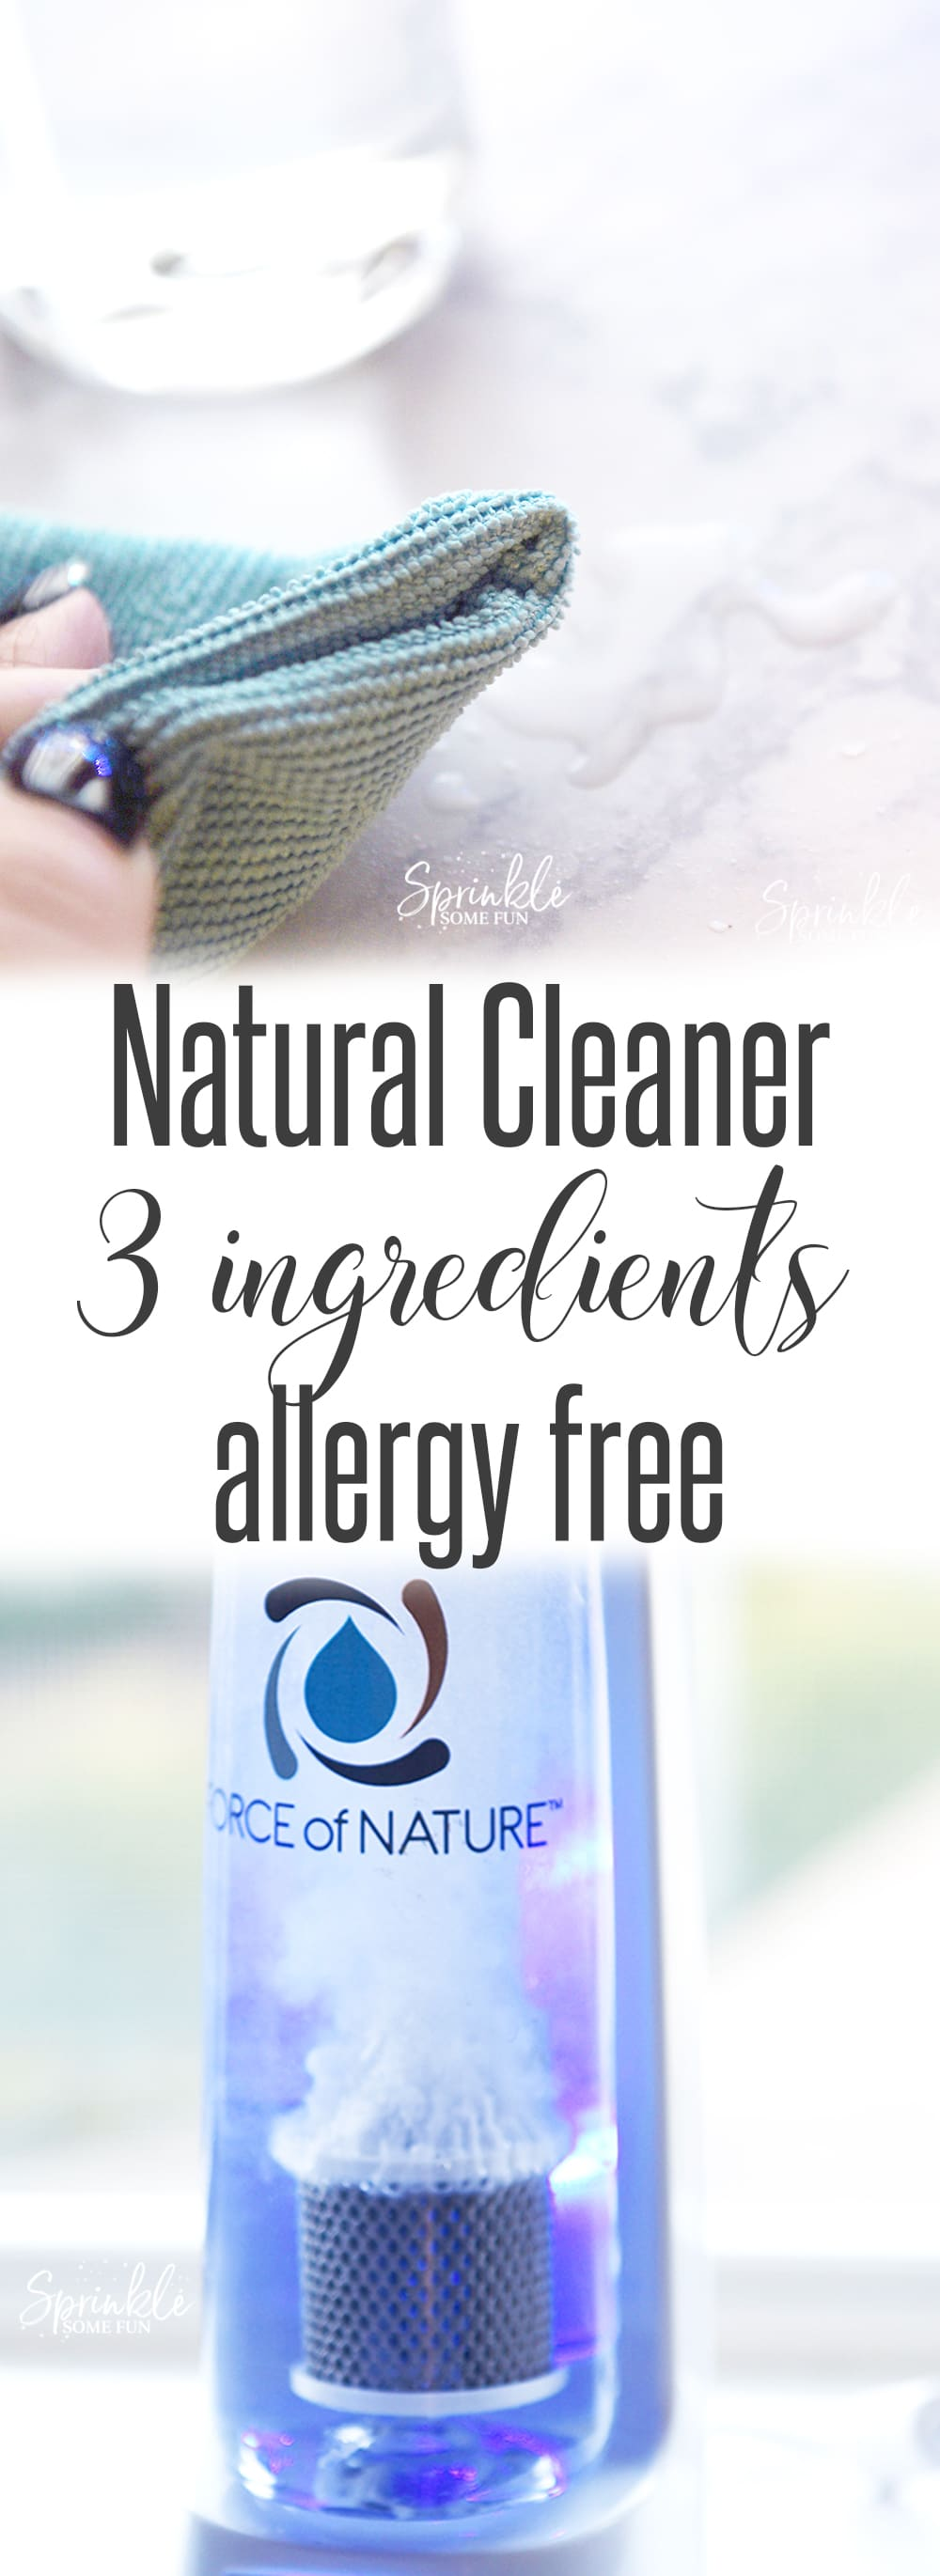 Force of Nature Cleaner is safe around kids and is non toxic and allergen free.  I can spray down my son's highchair and he can eat from it right away.